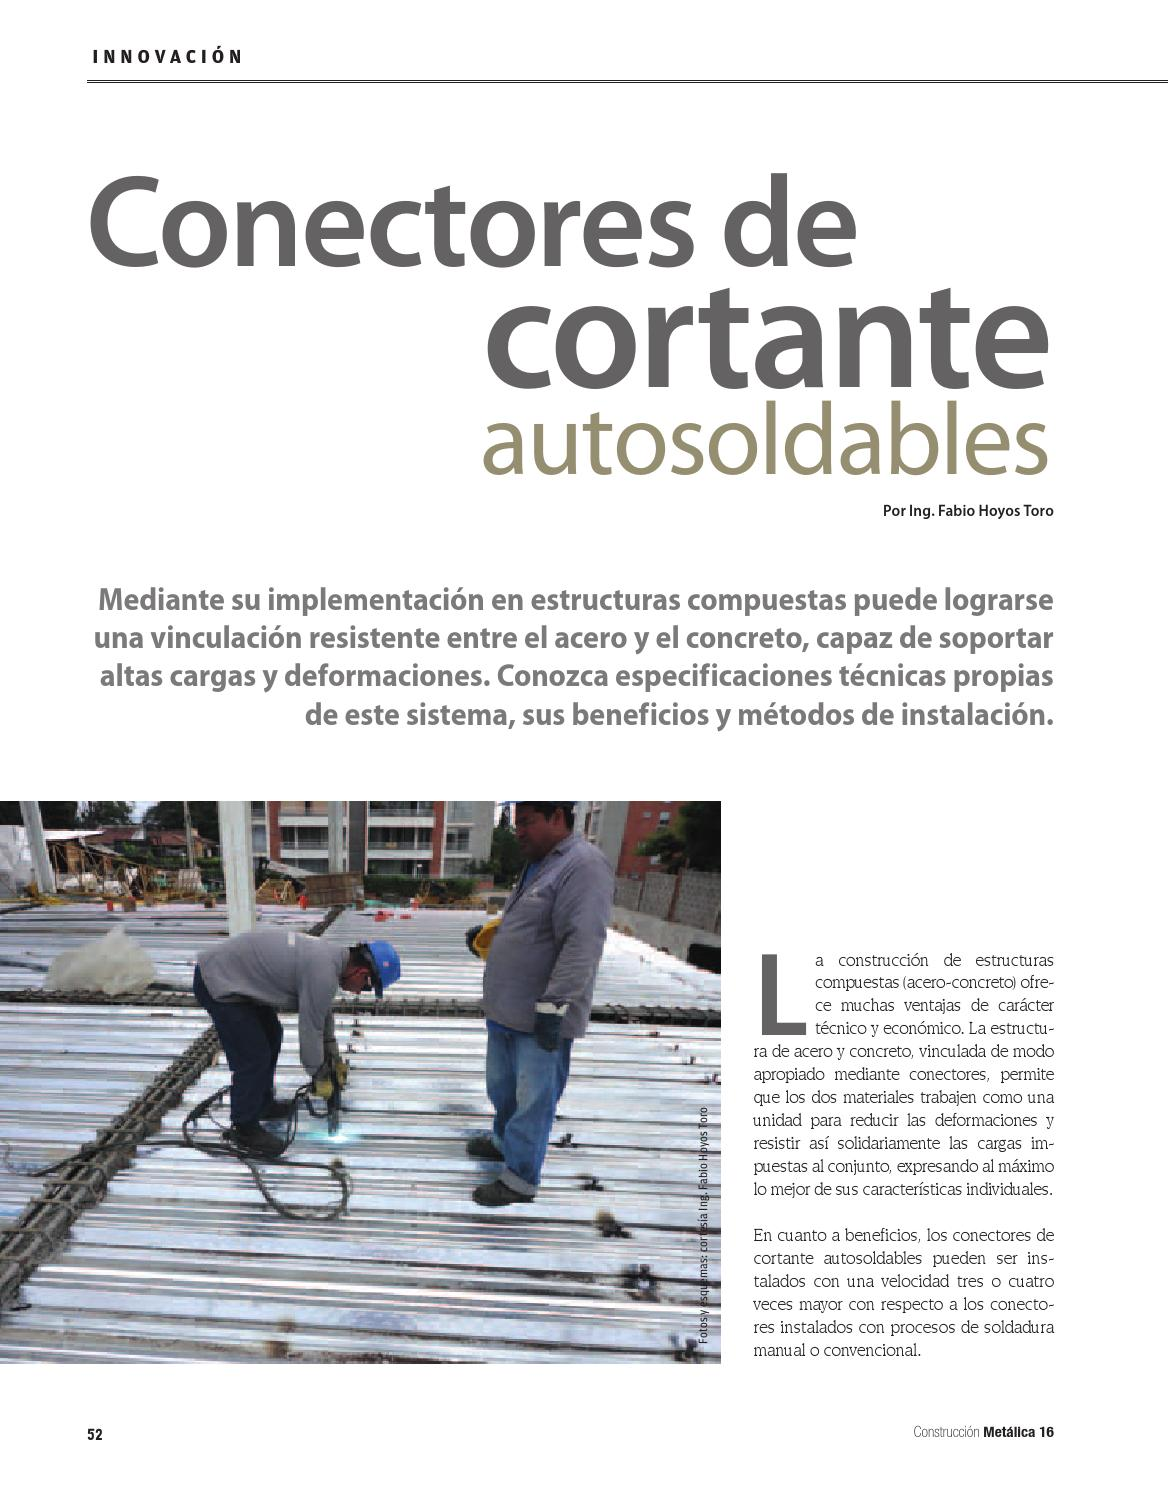 Conectores de cortante autosoldable by LEGIS SA - issuu